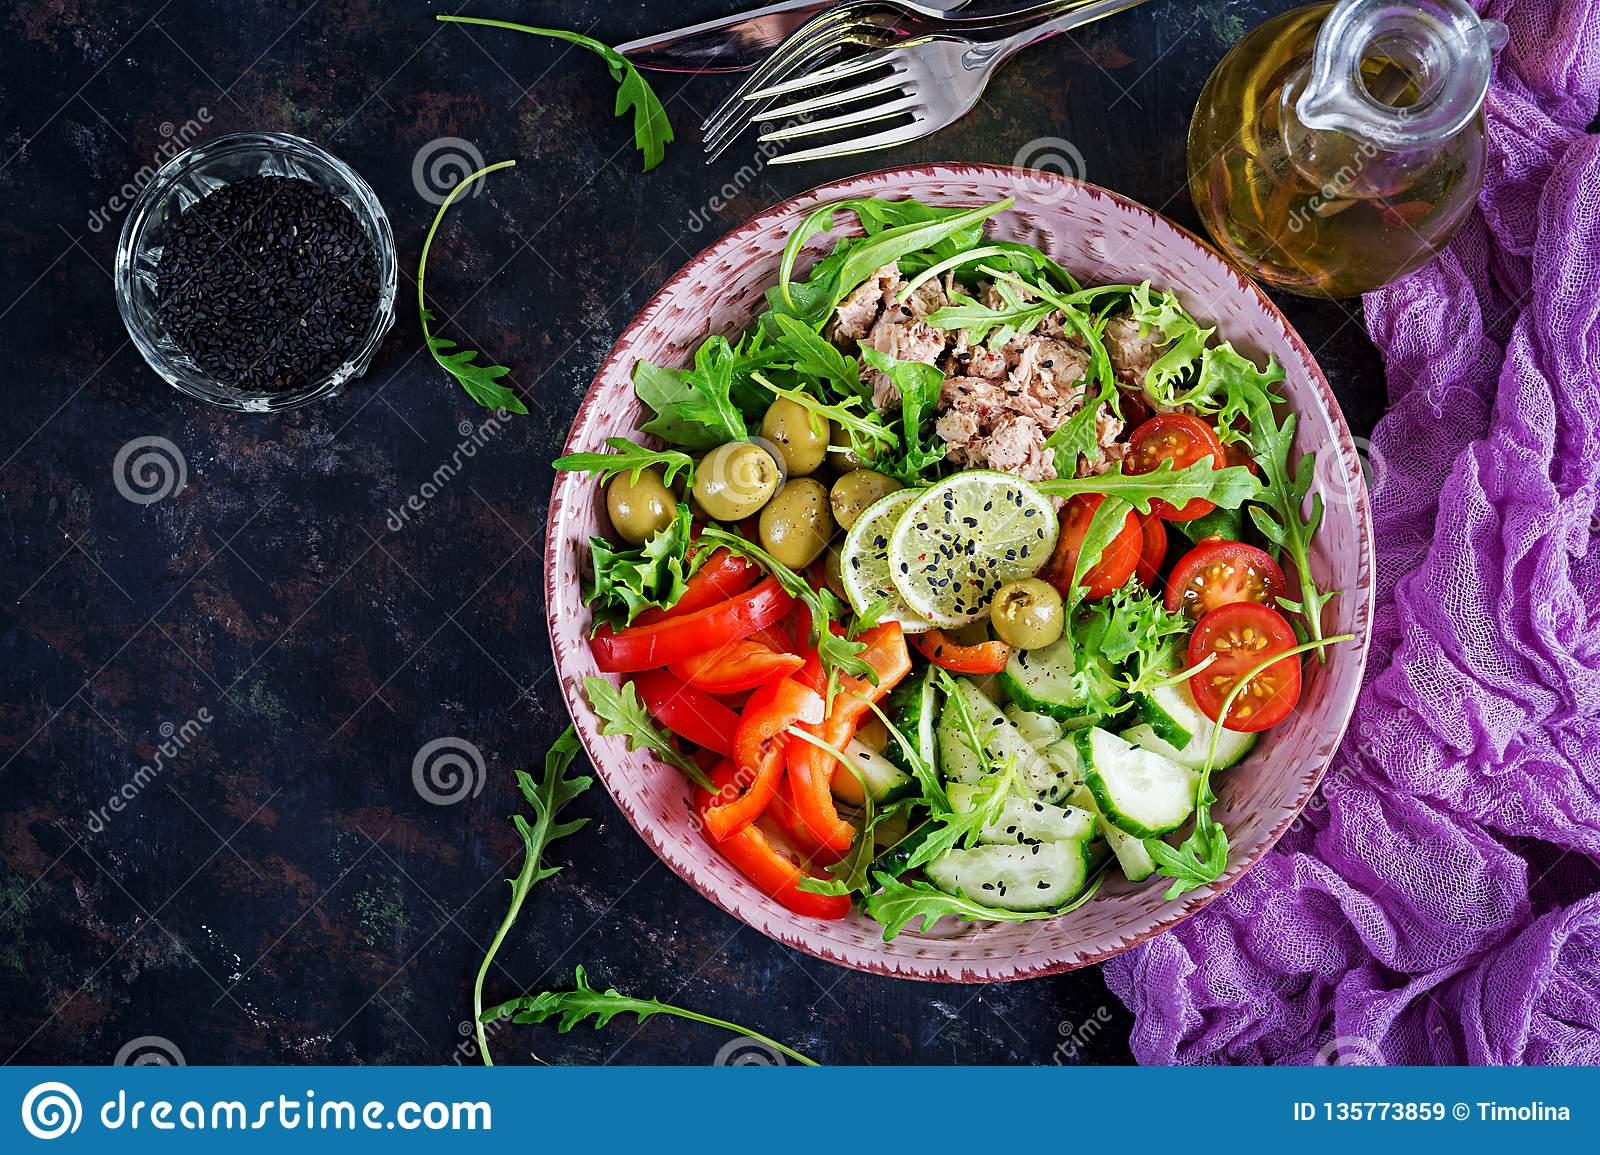 Tuna salad with tomatoes, olives, cucumber, sweet pepper and arugula